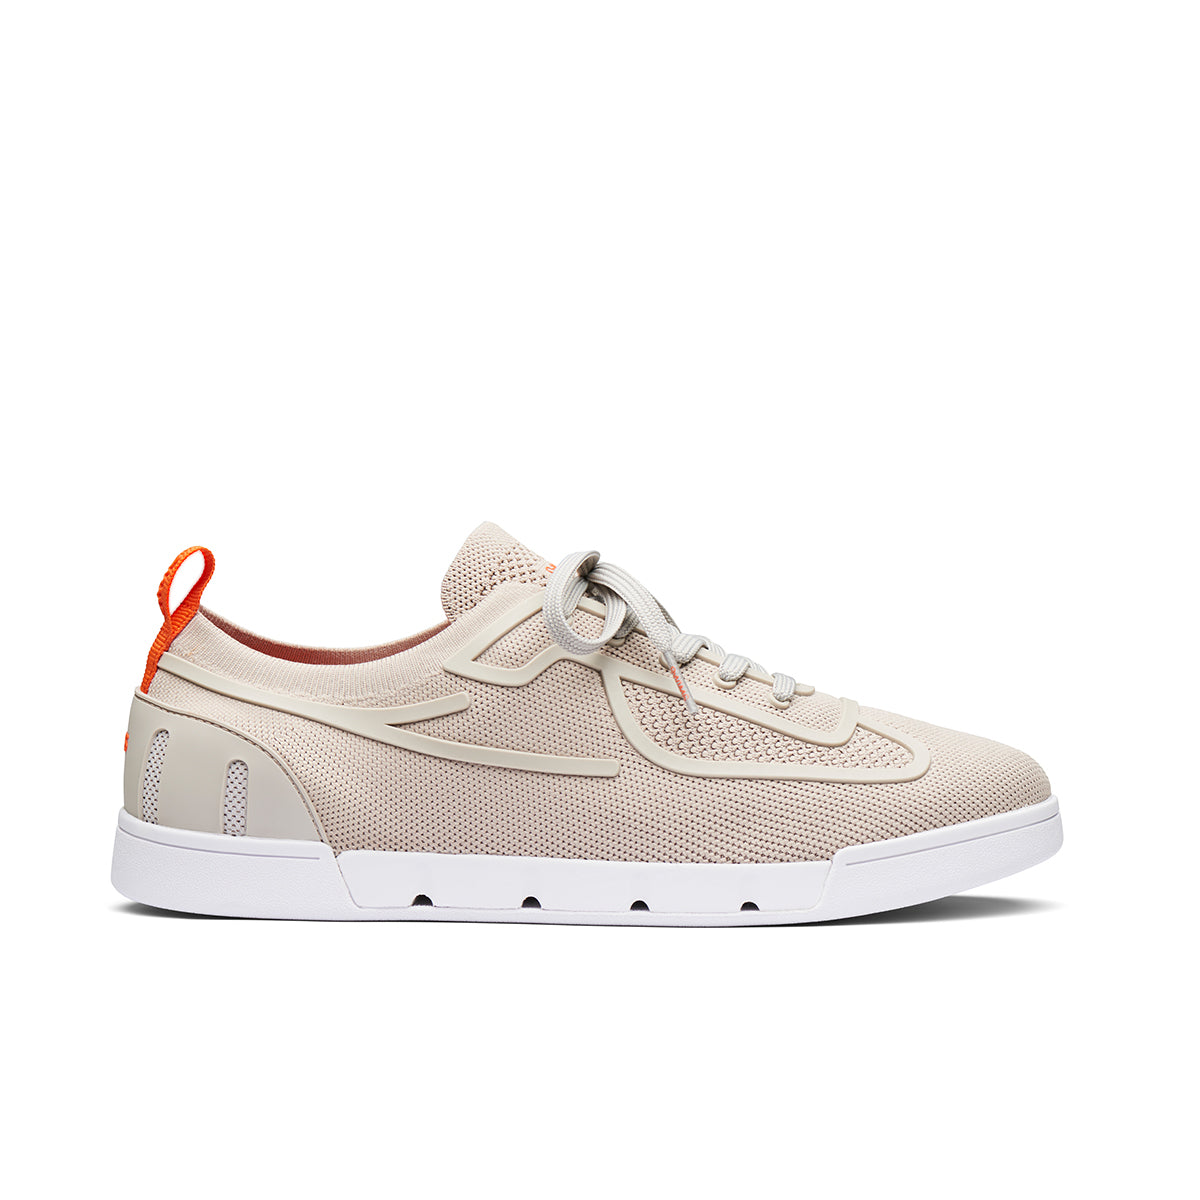 Breeze Flex Tennis - background::white,variant::Khaki